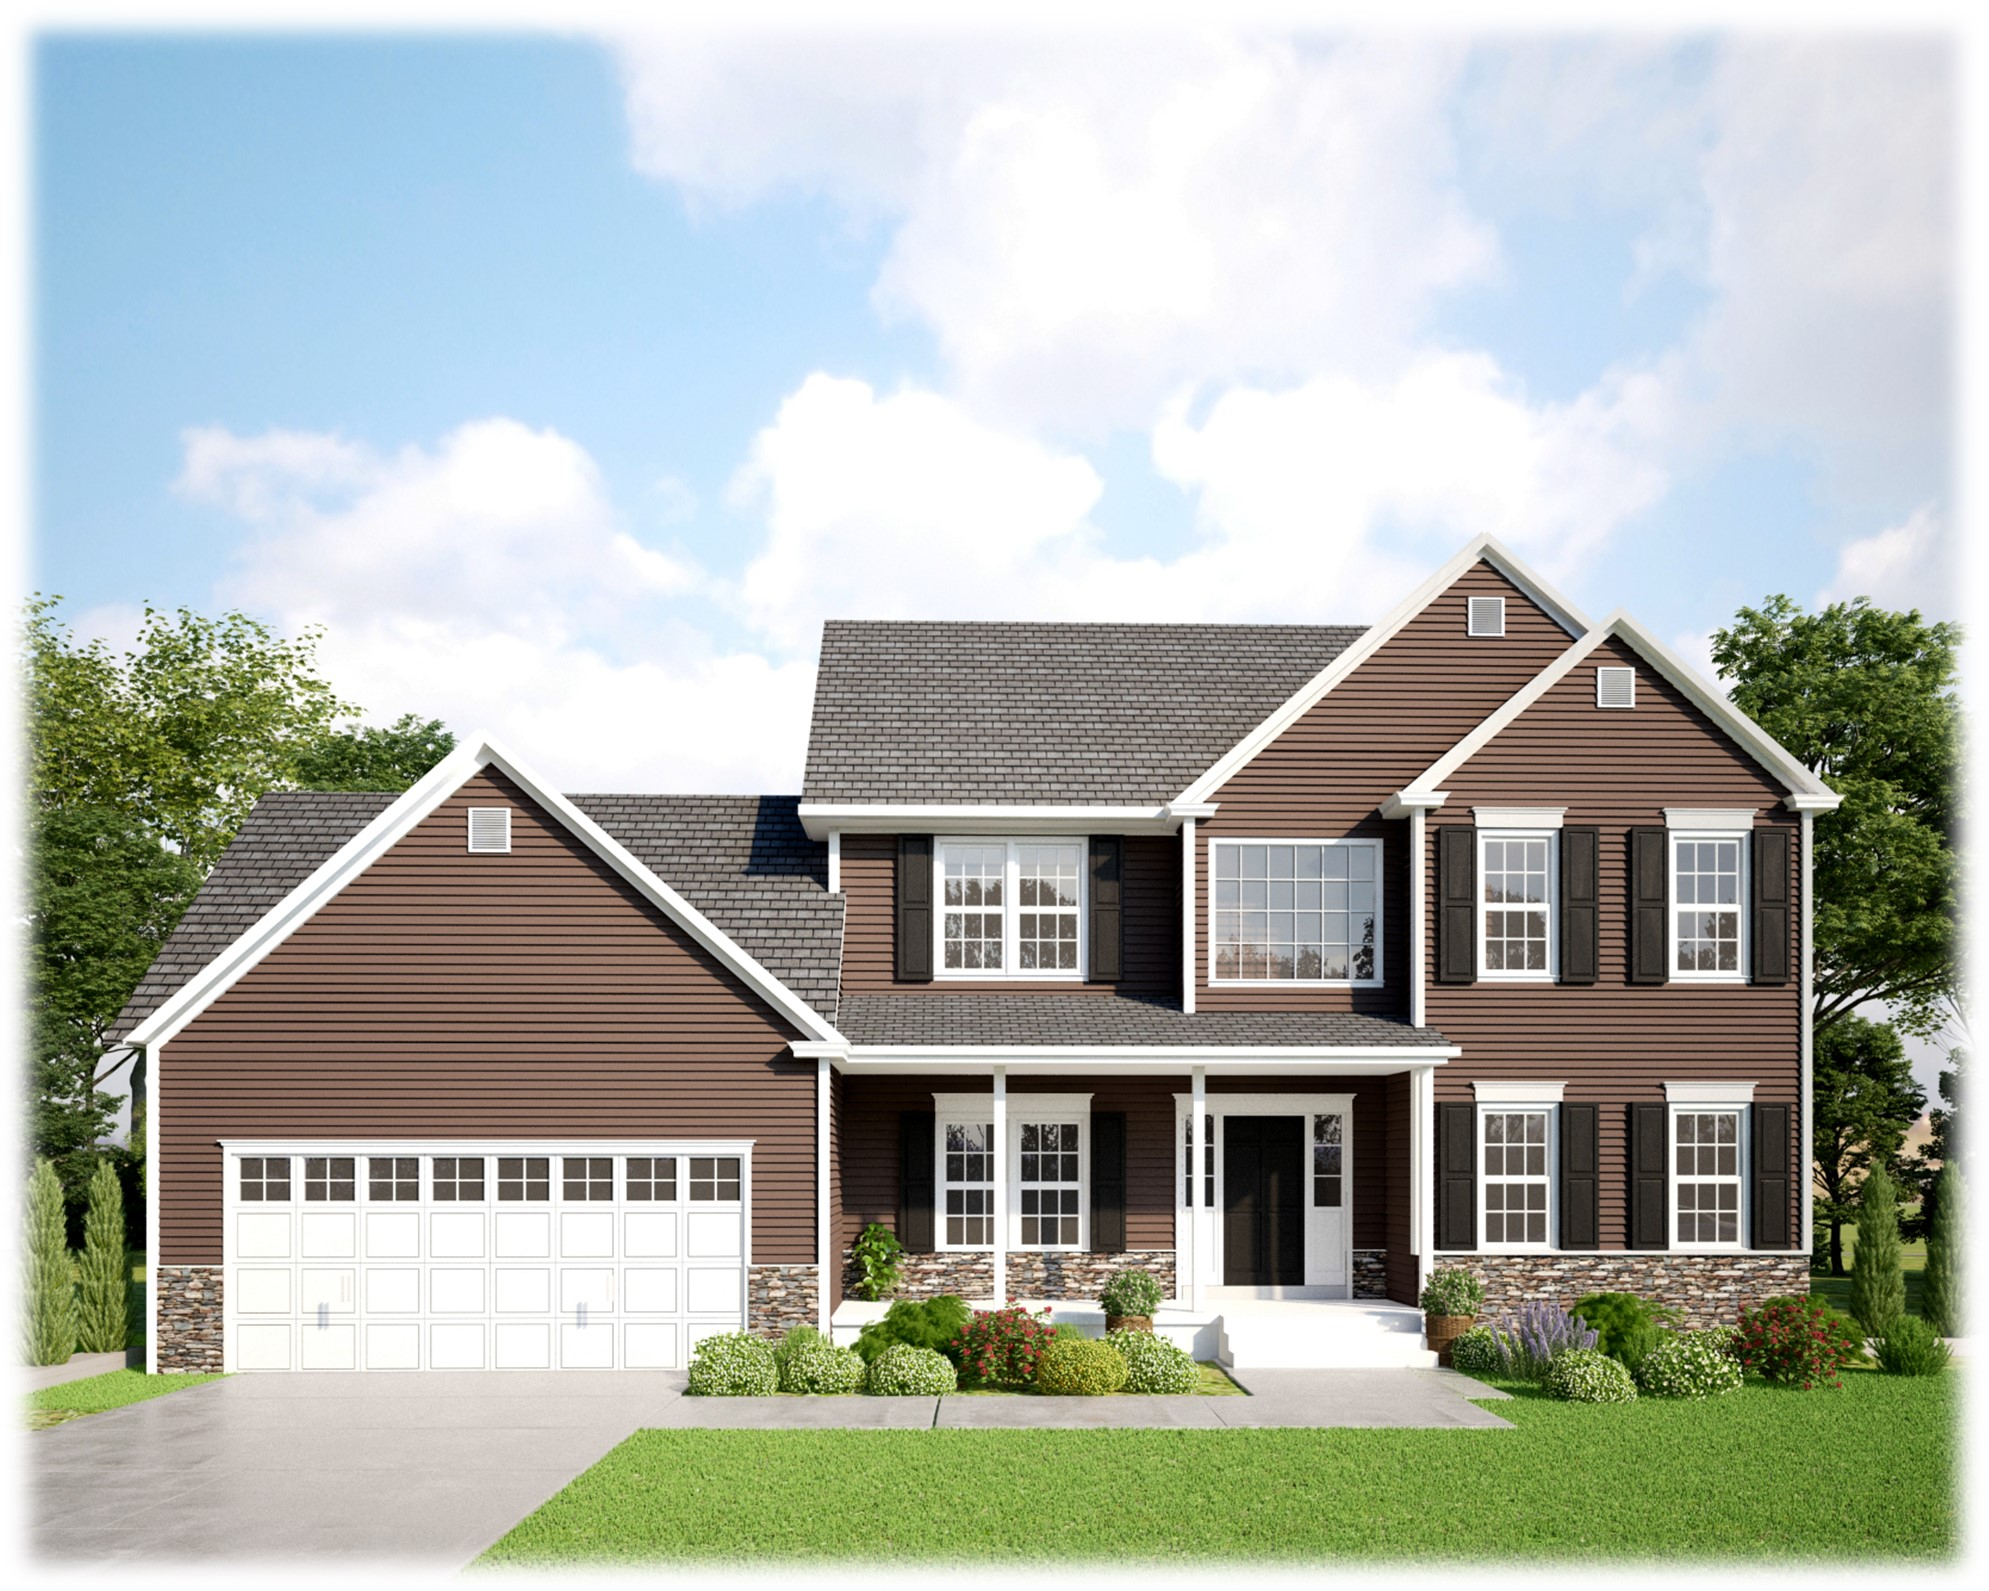 Brown Two Story Home with Black Shutters and a two car garage